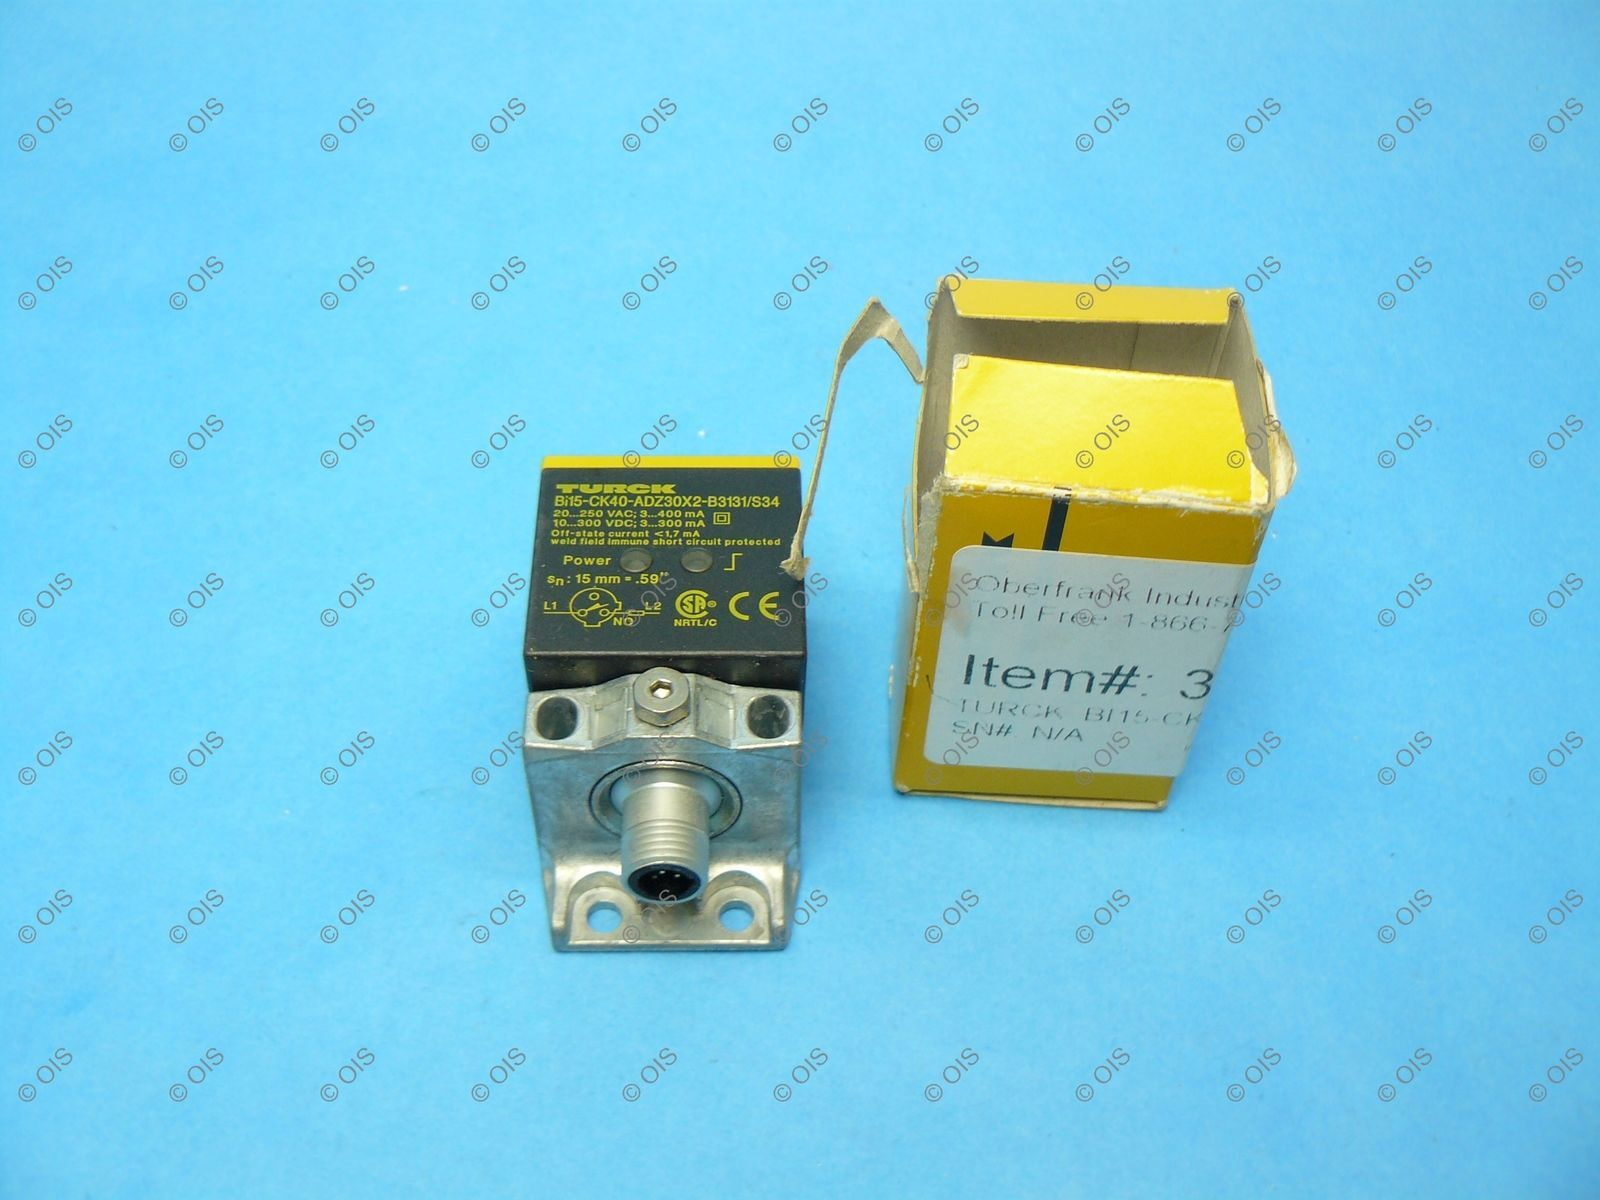 Turck BI15-CK40-ADZ30X2-B3131/S34 Proximity and 50 similar items